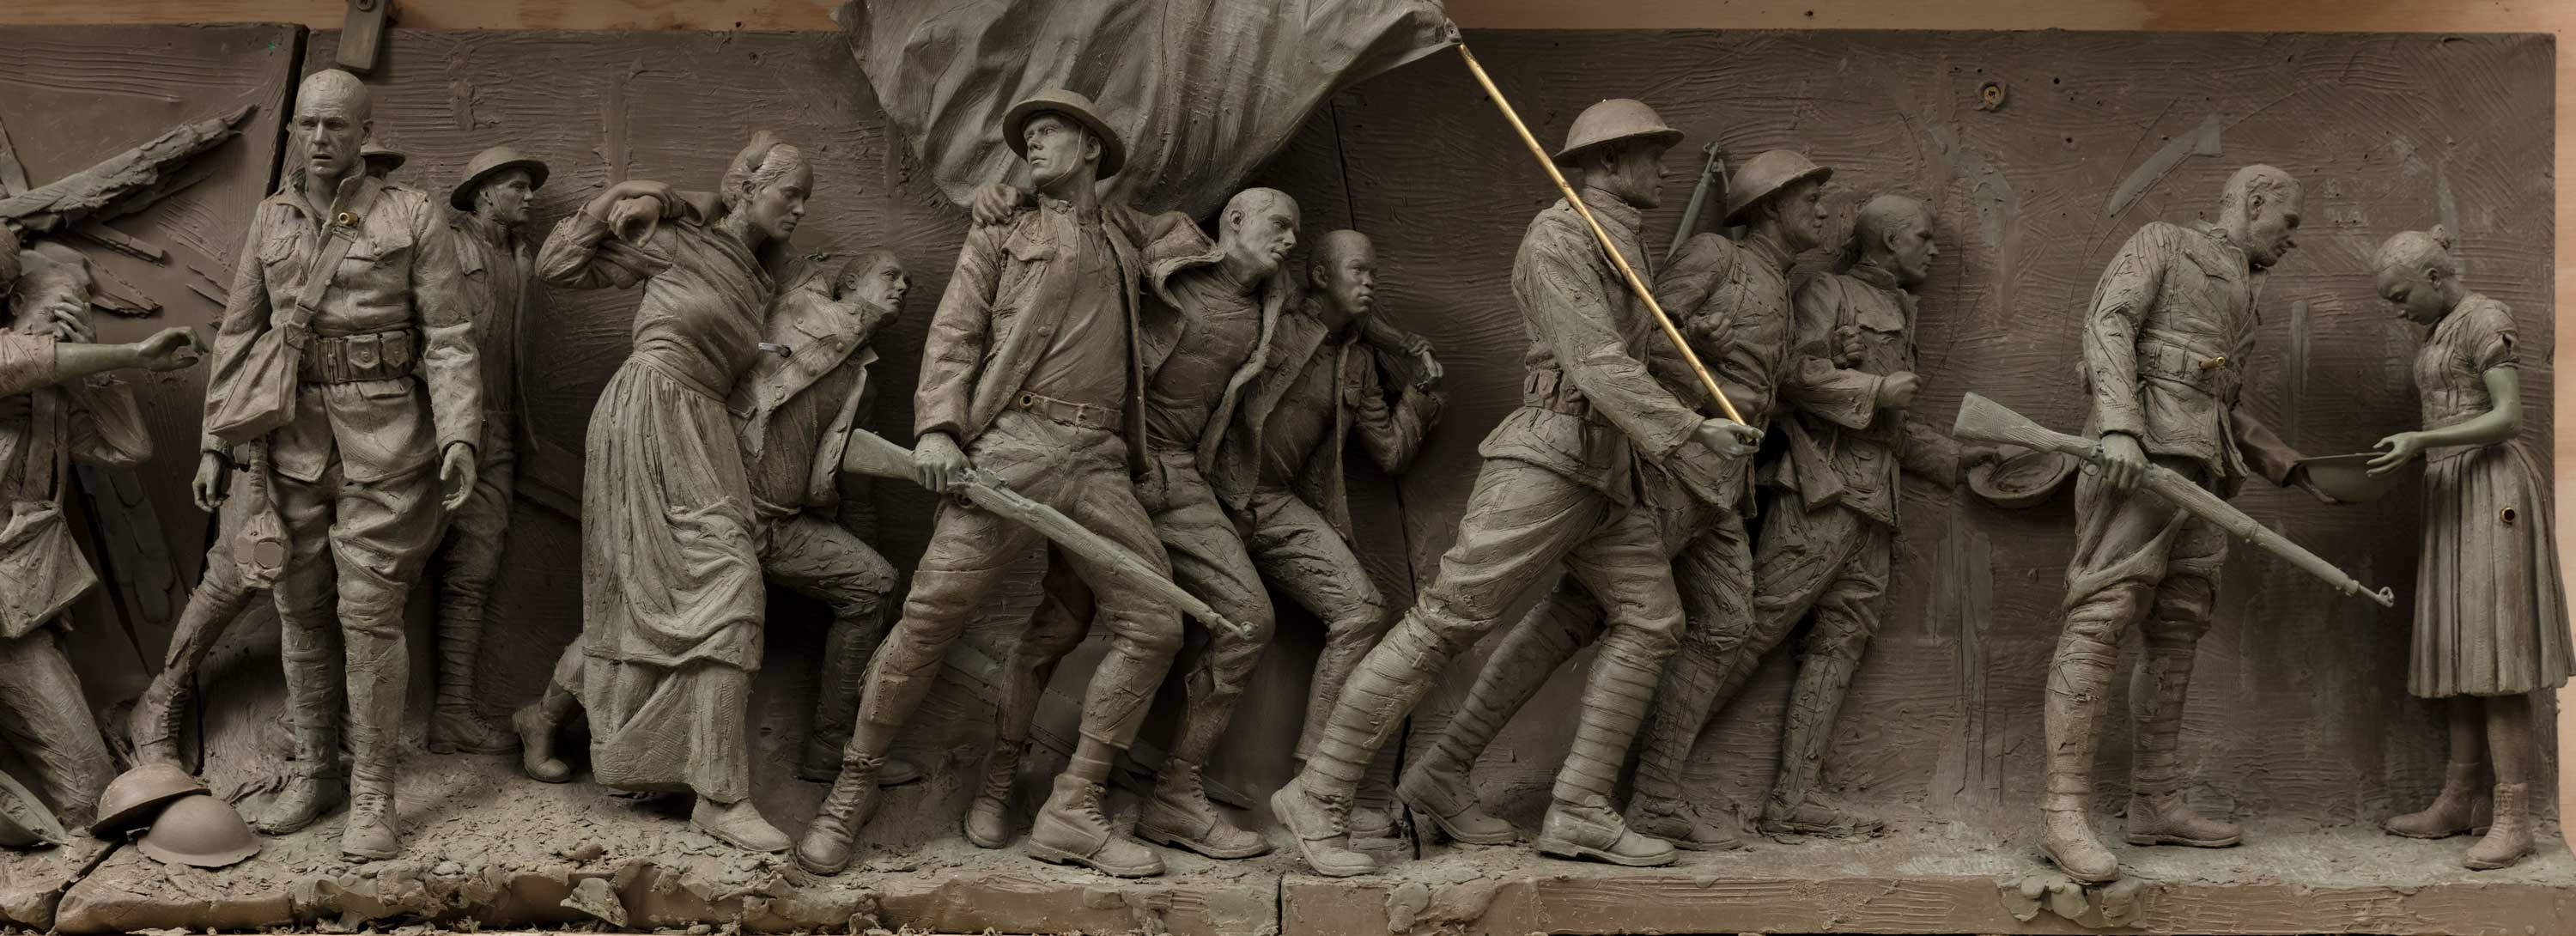 Realism sculpture - Sabin Howard - RealismToday.com